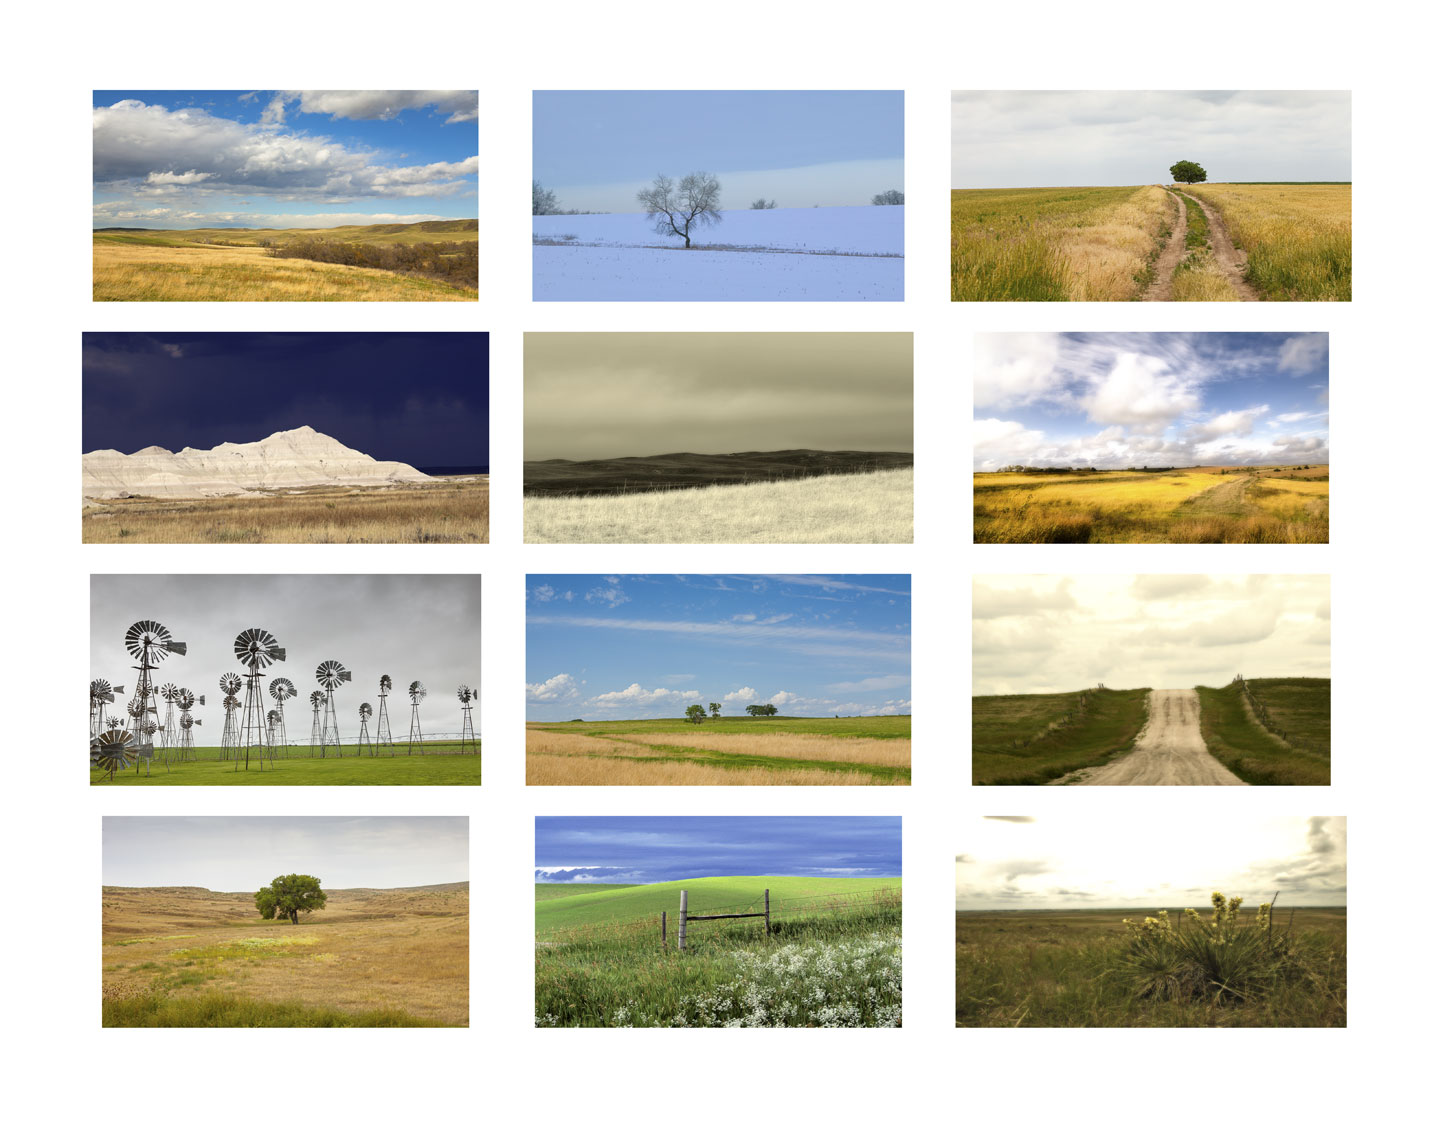 027_Landscapes-Typology